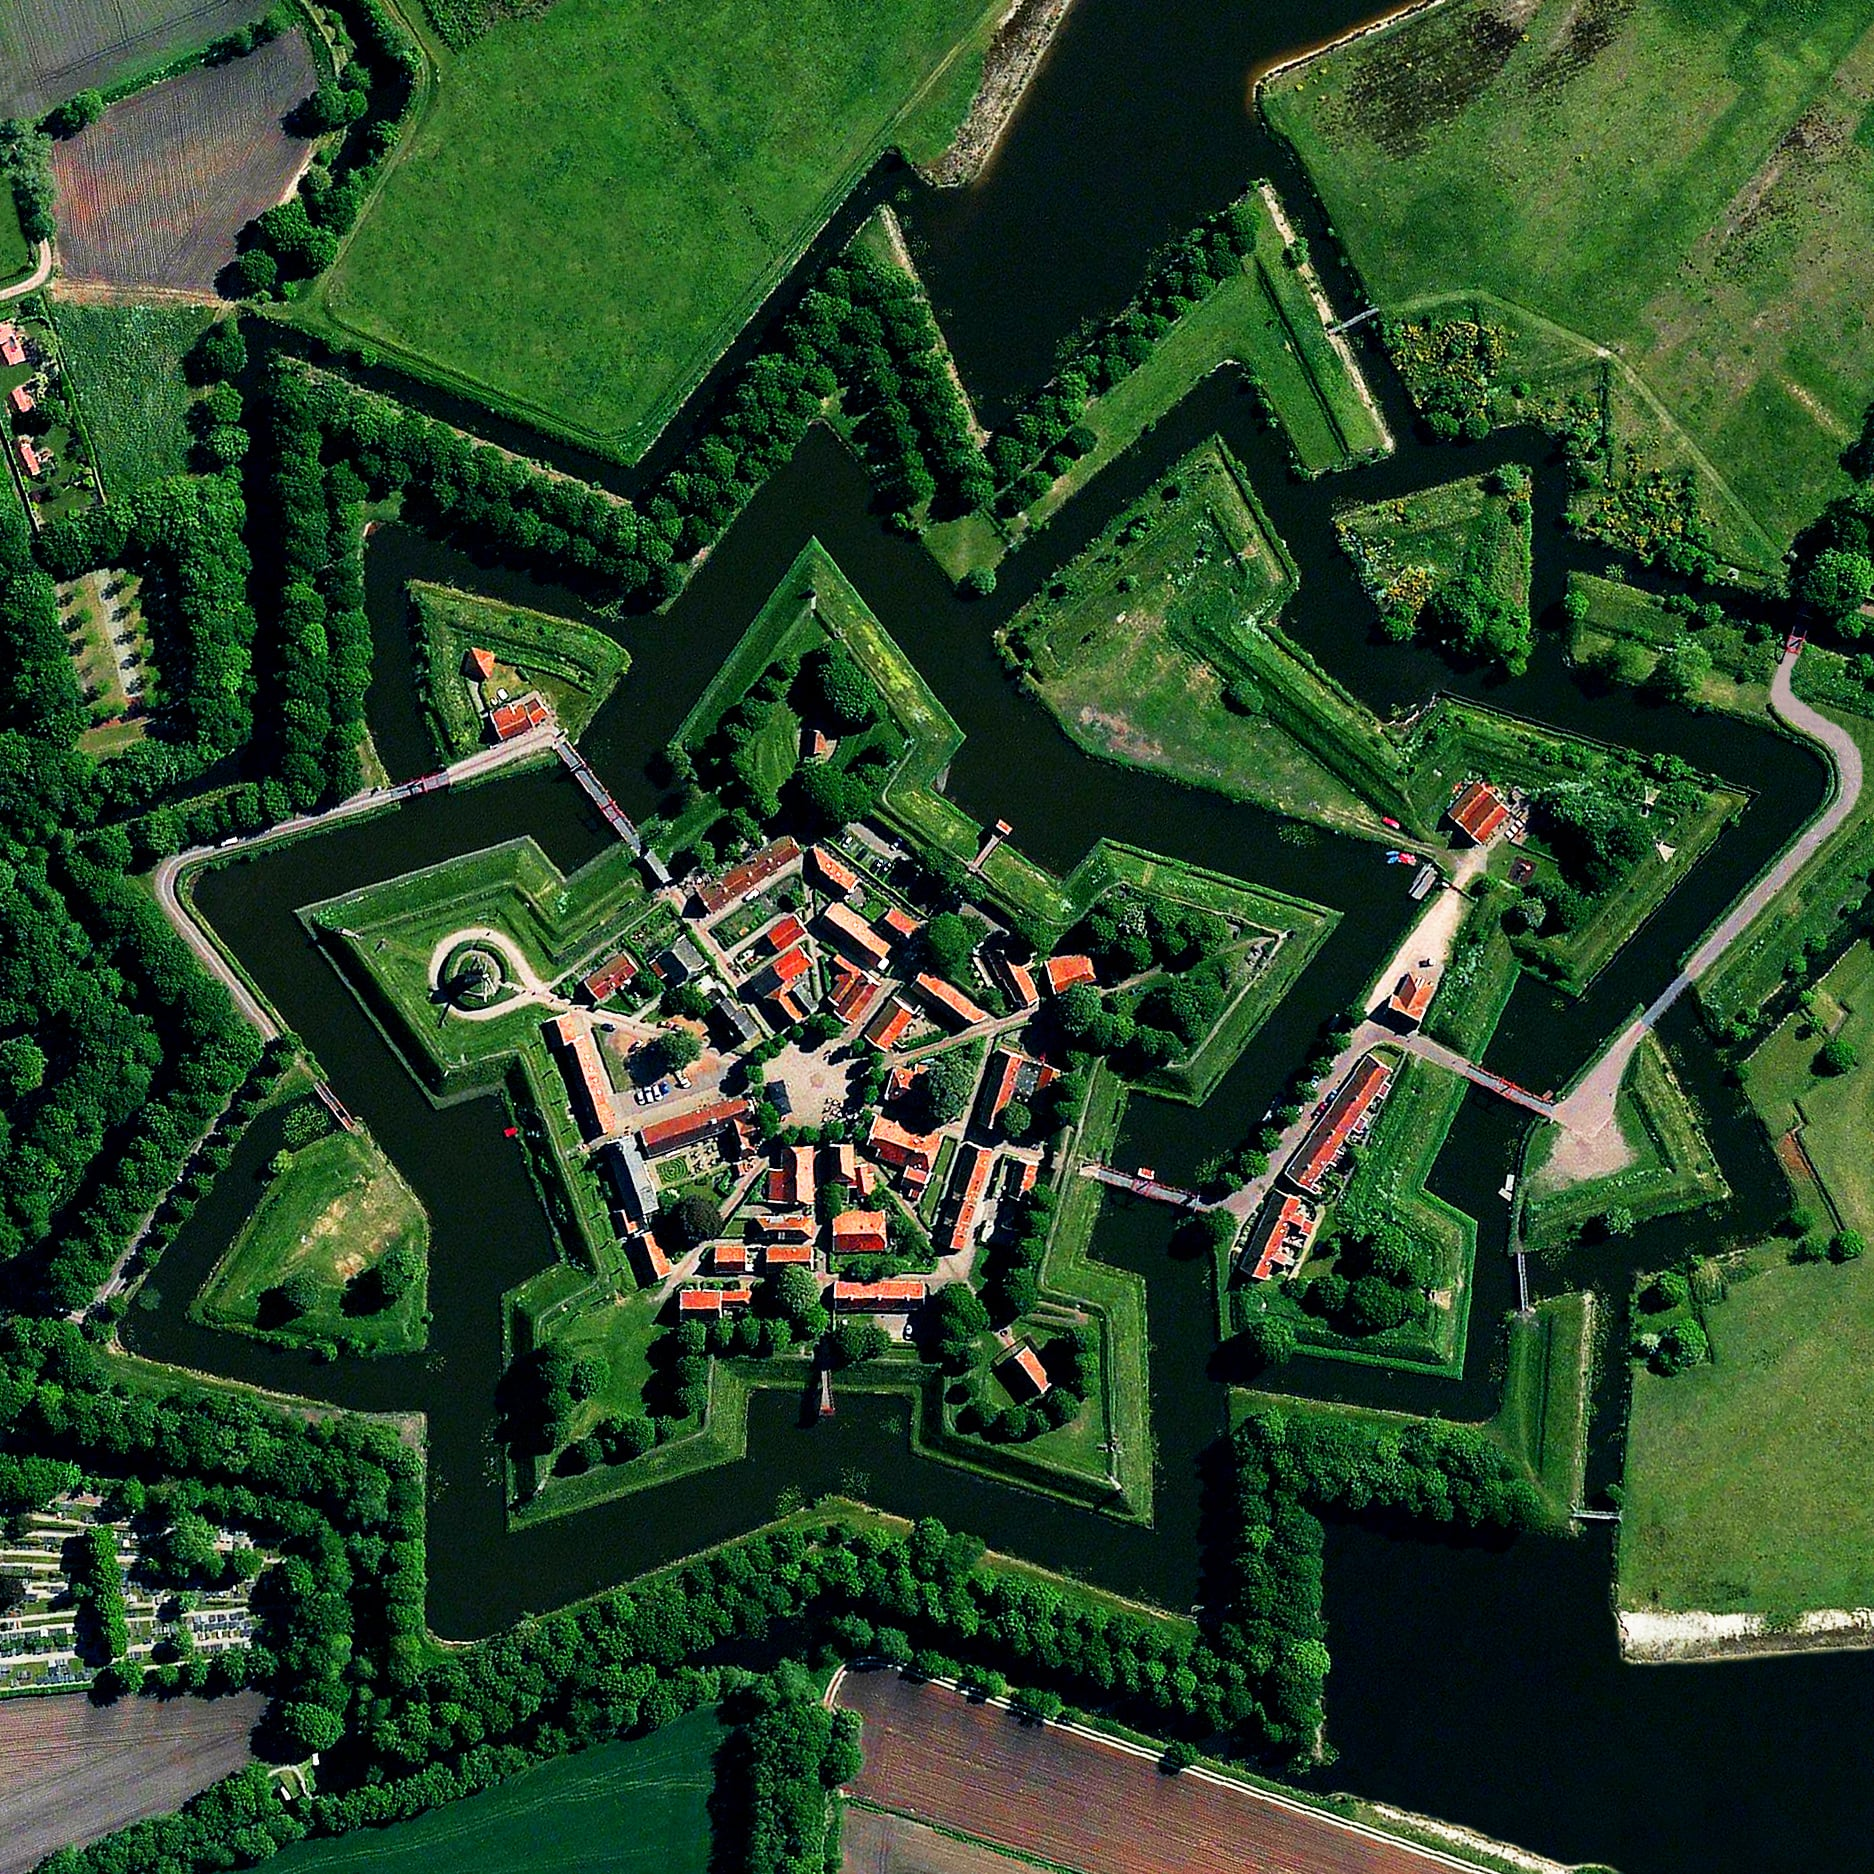 1/13/2016   Bourtange   Bourtange, Netherlands  53.0066°N 7.1920°E    Bourtange is a star fort located in the Netherlands. The complex was built in 1593 in the manner you see here so that an attack on any of its five walls could be aggressively counteracted from the two adjacent star points. The village currently has an occupation of 430.